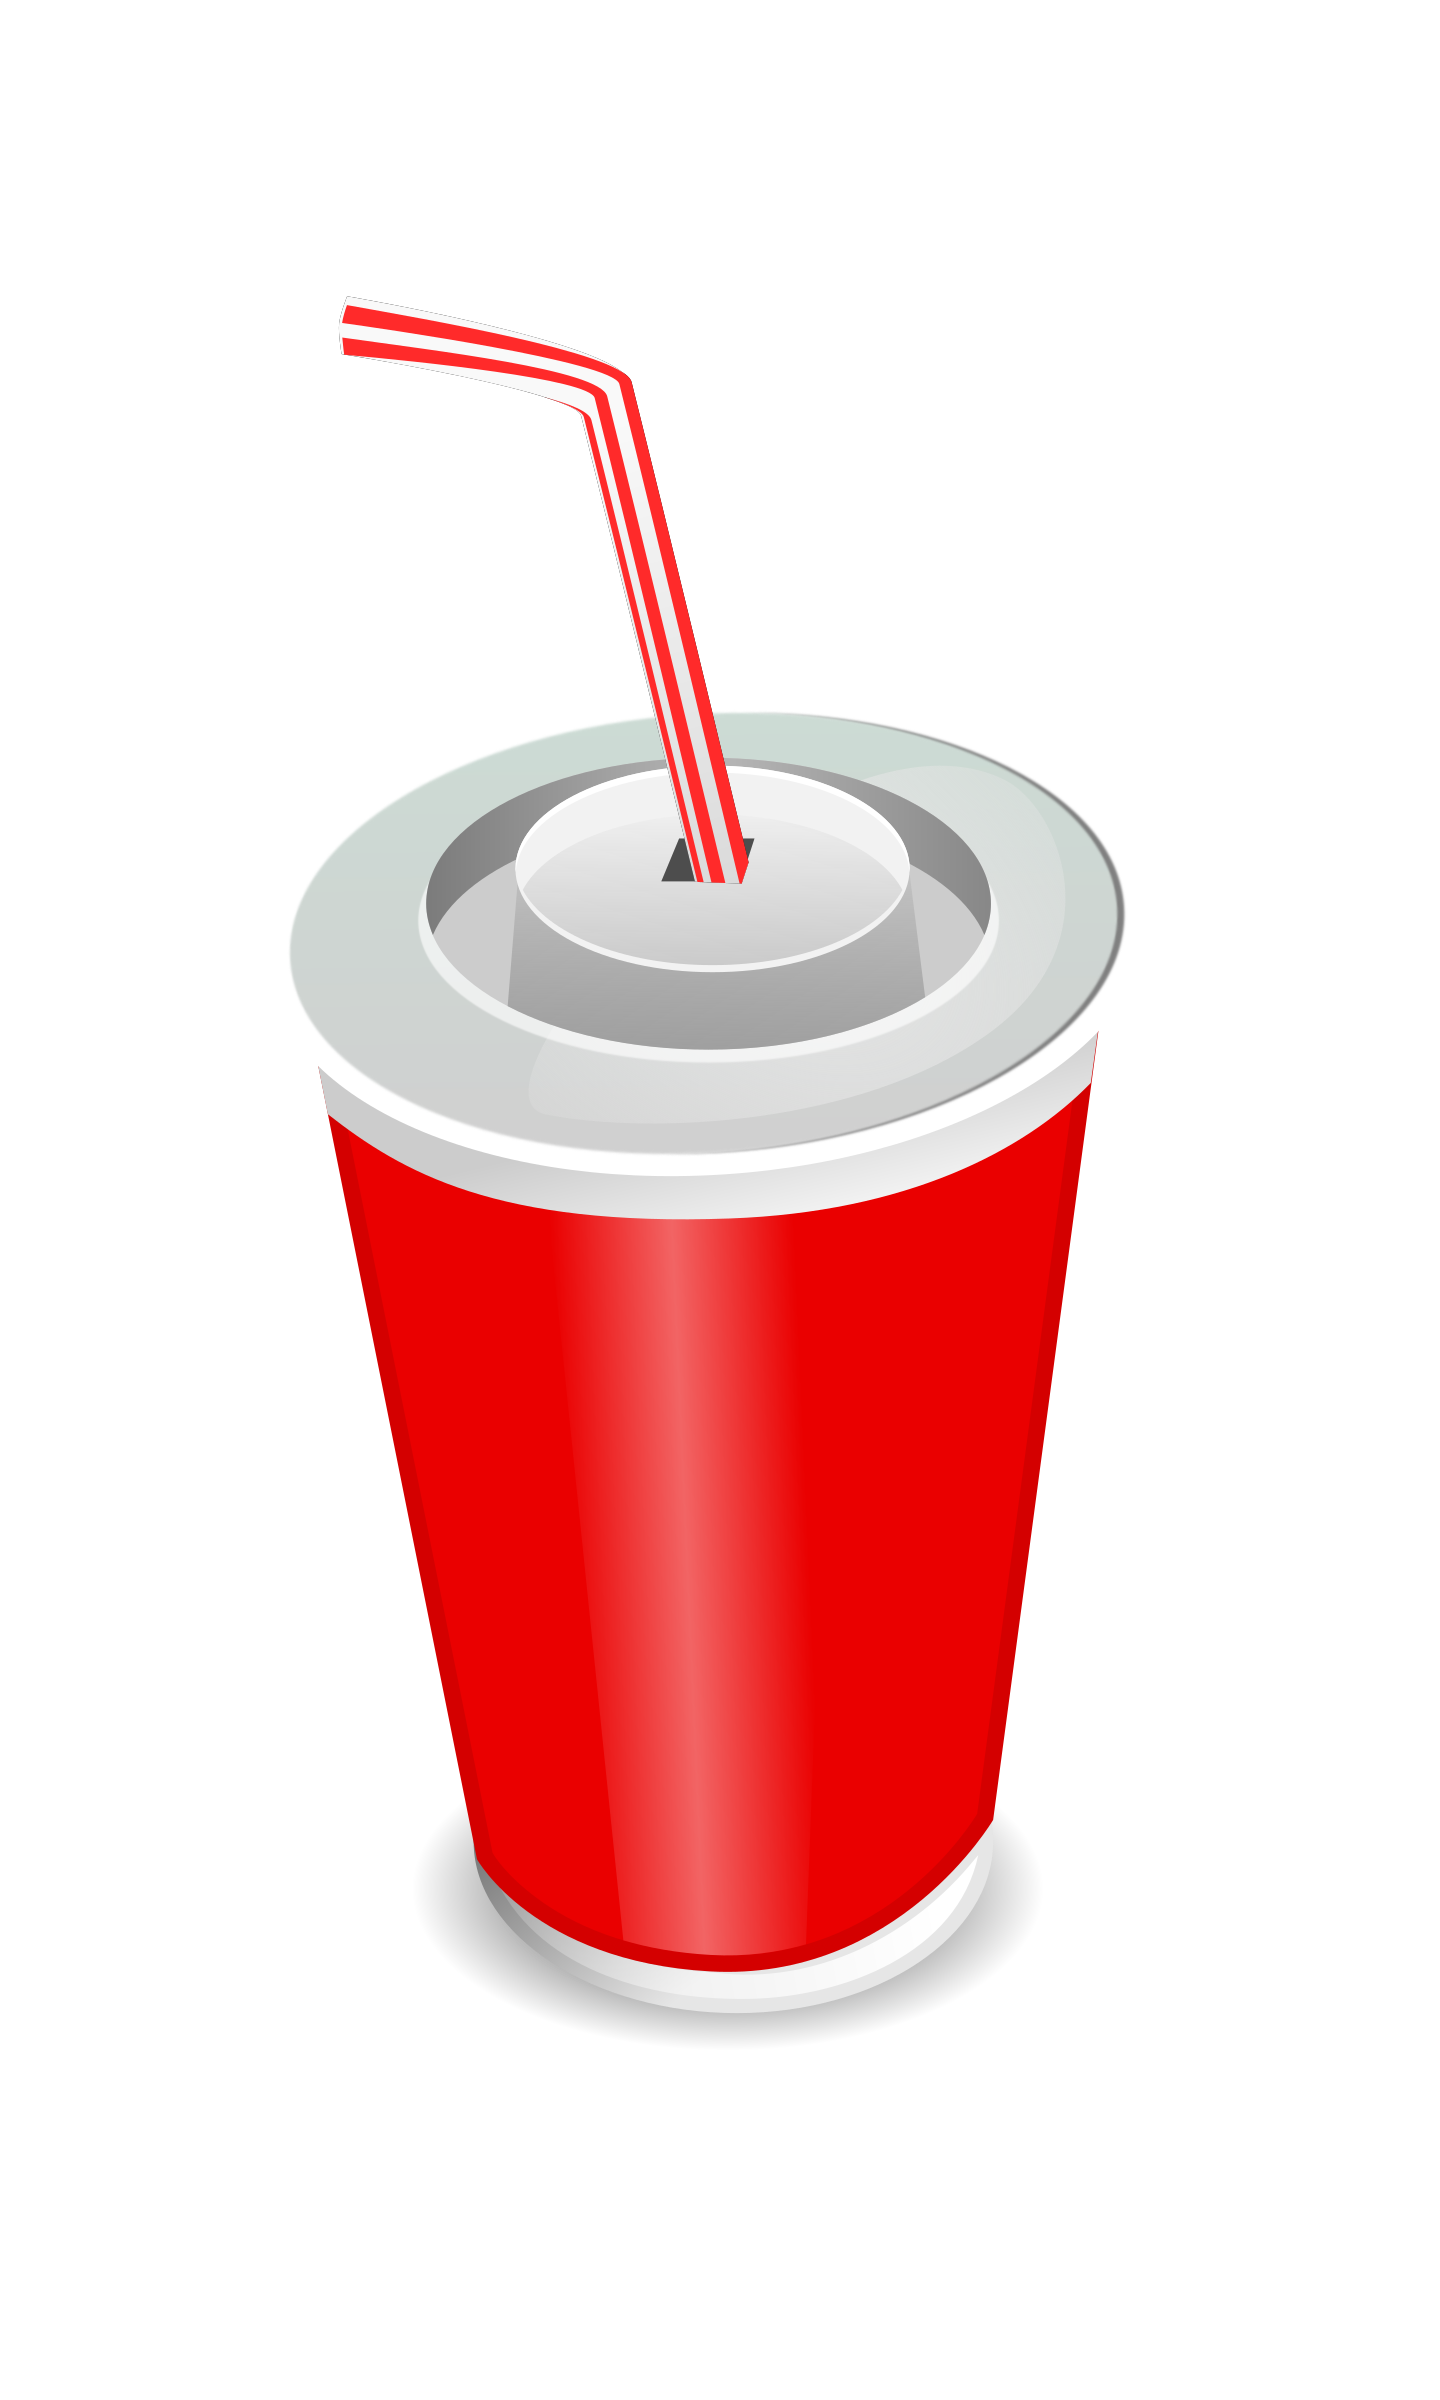 Politics clipart speech delivery. Softdrink by gnokii pinterest